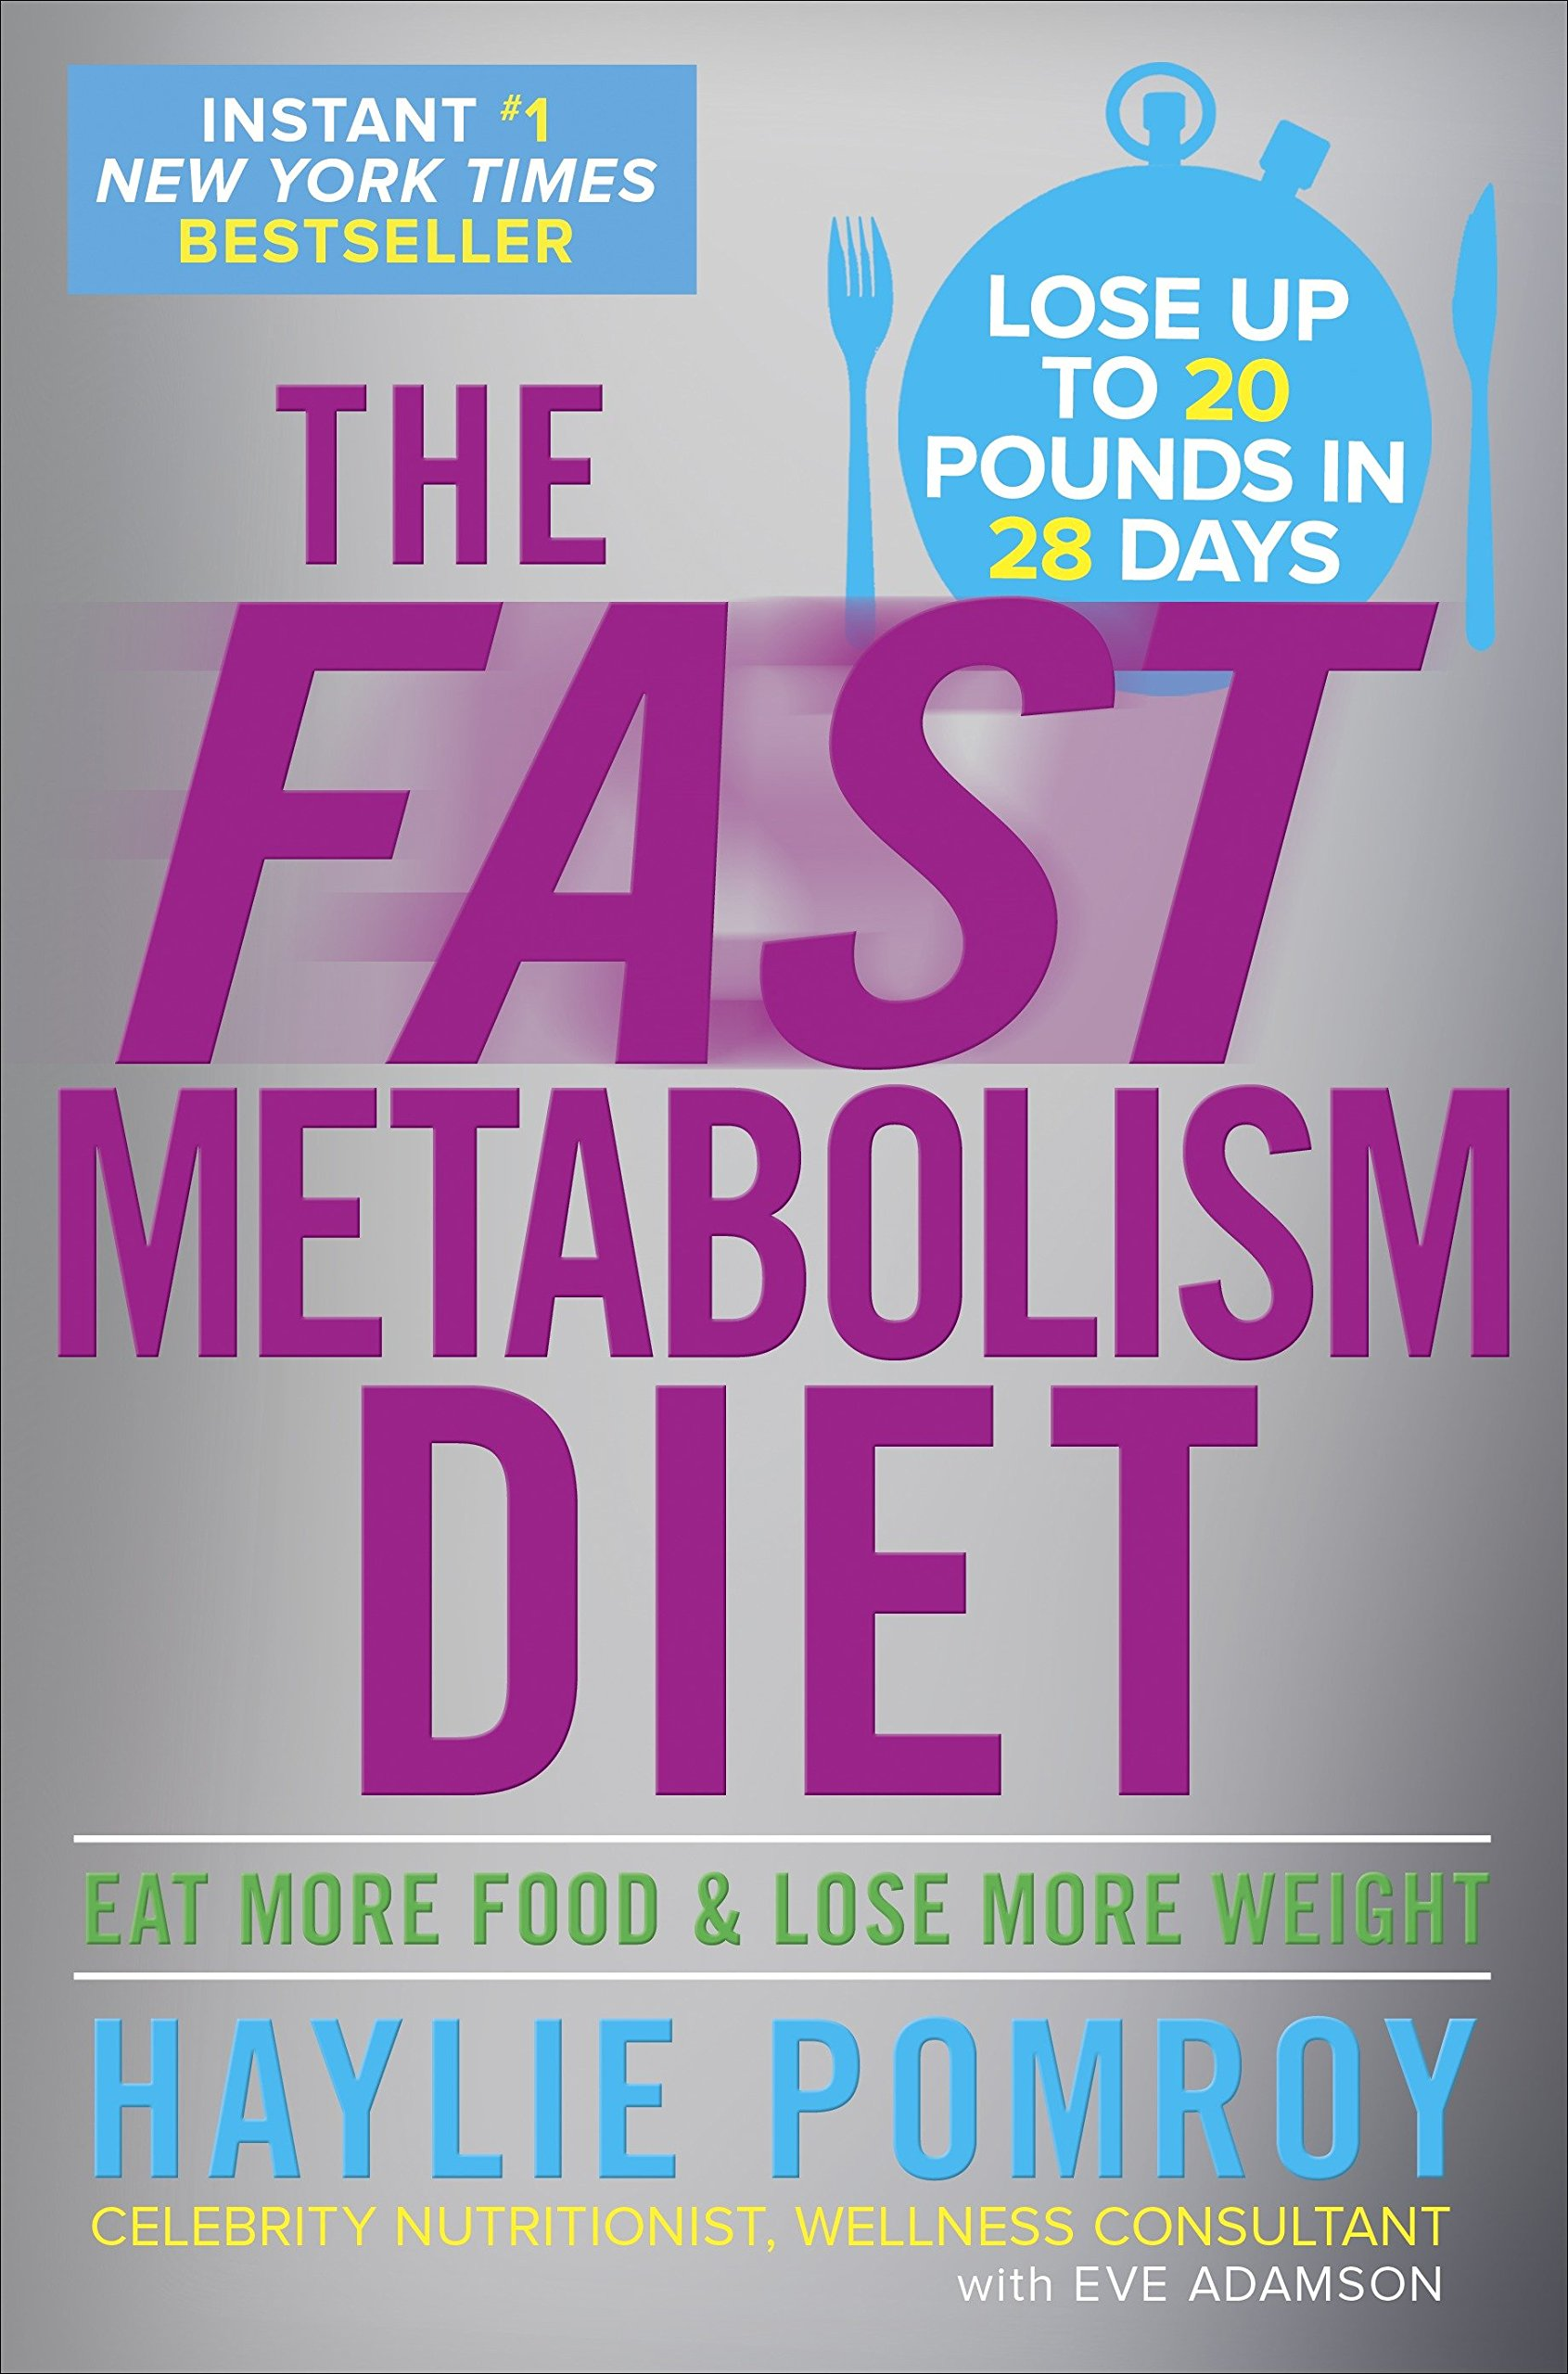 The Fast Metabolism Diet: Eat More Food and Lose More Weight by Harmony